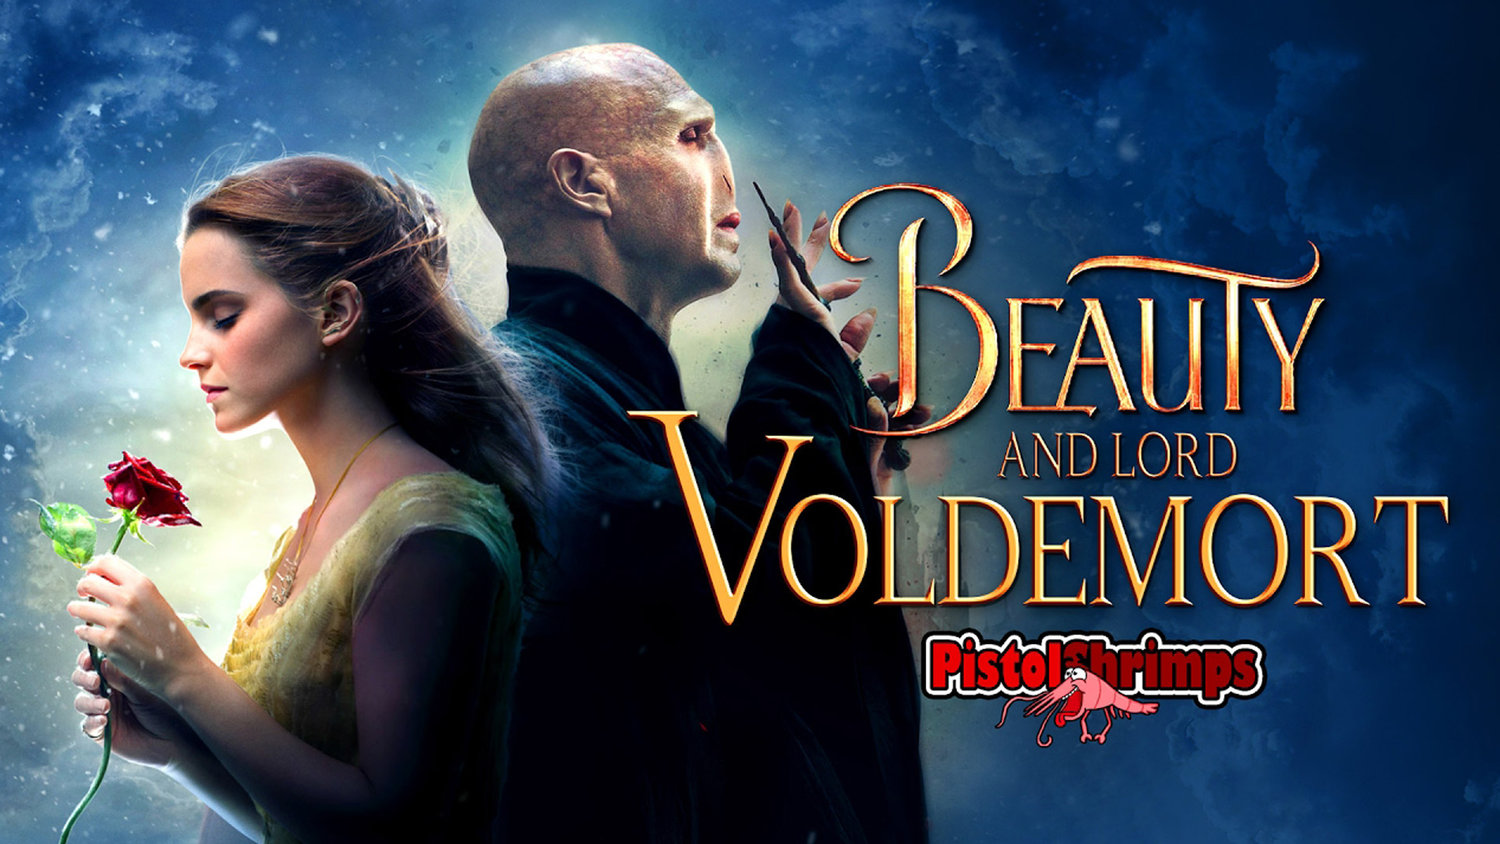 This HARRY POTTER/BEAUTY AND THE BEAST Mashup Is Disturbing (But Incredibly Well Made)